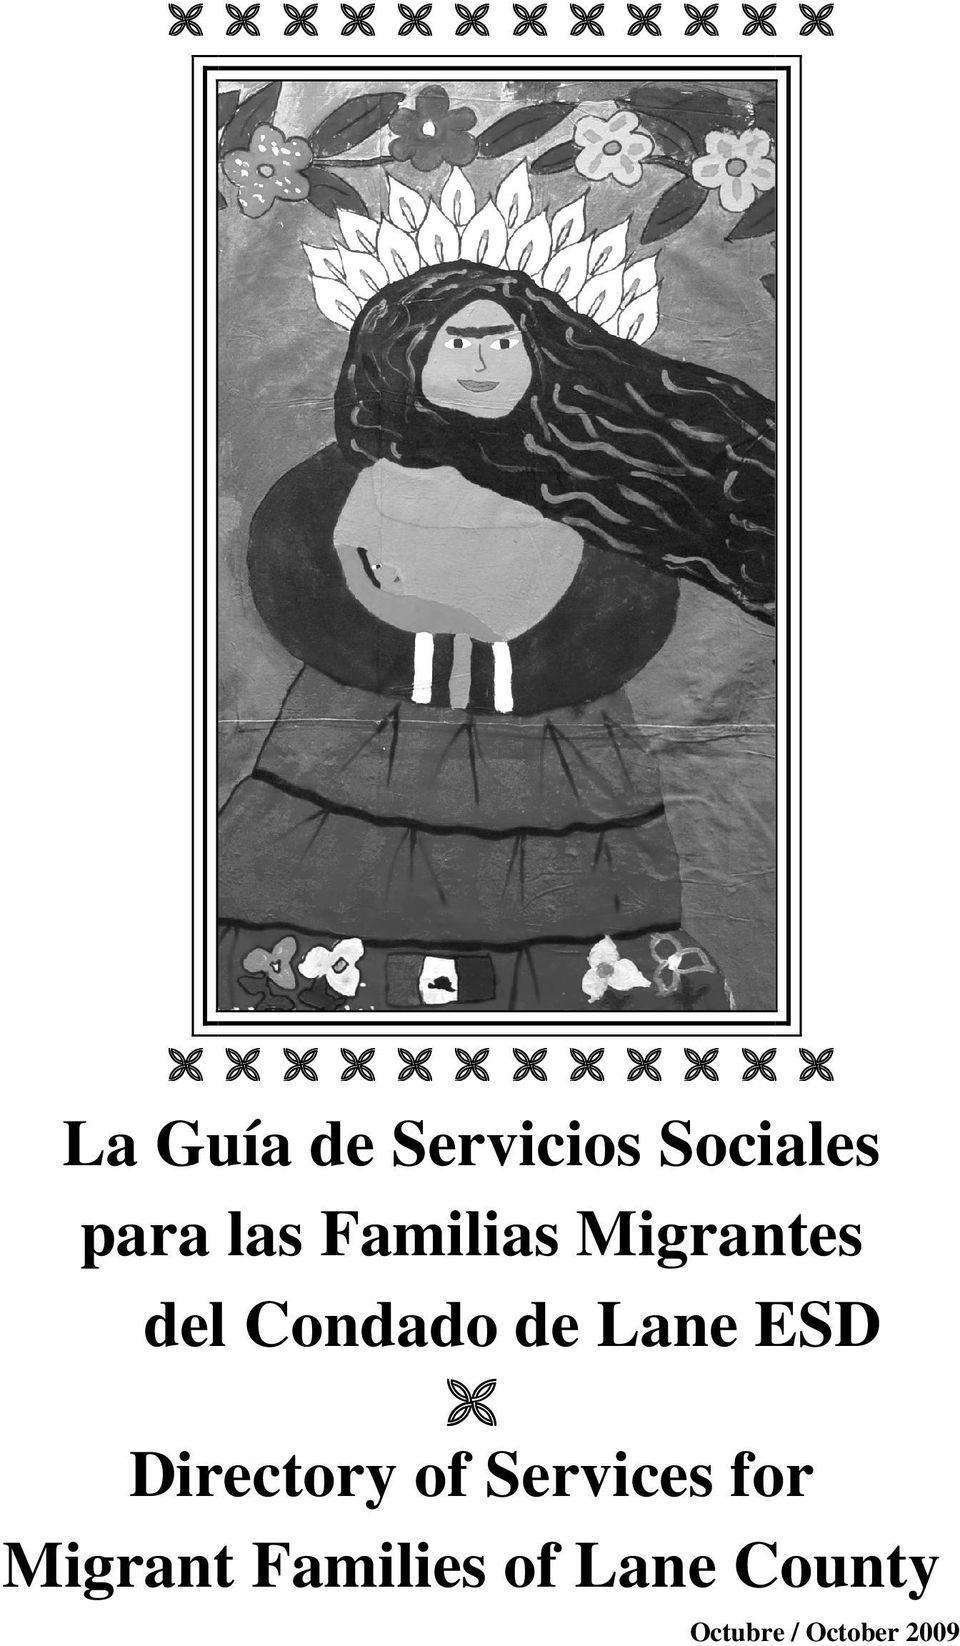 ESD Directory of Services for Migrant